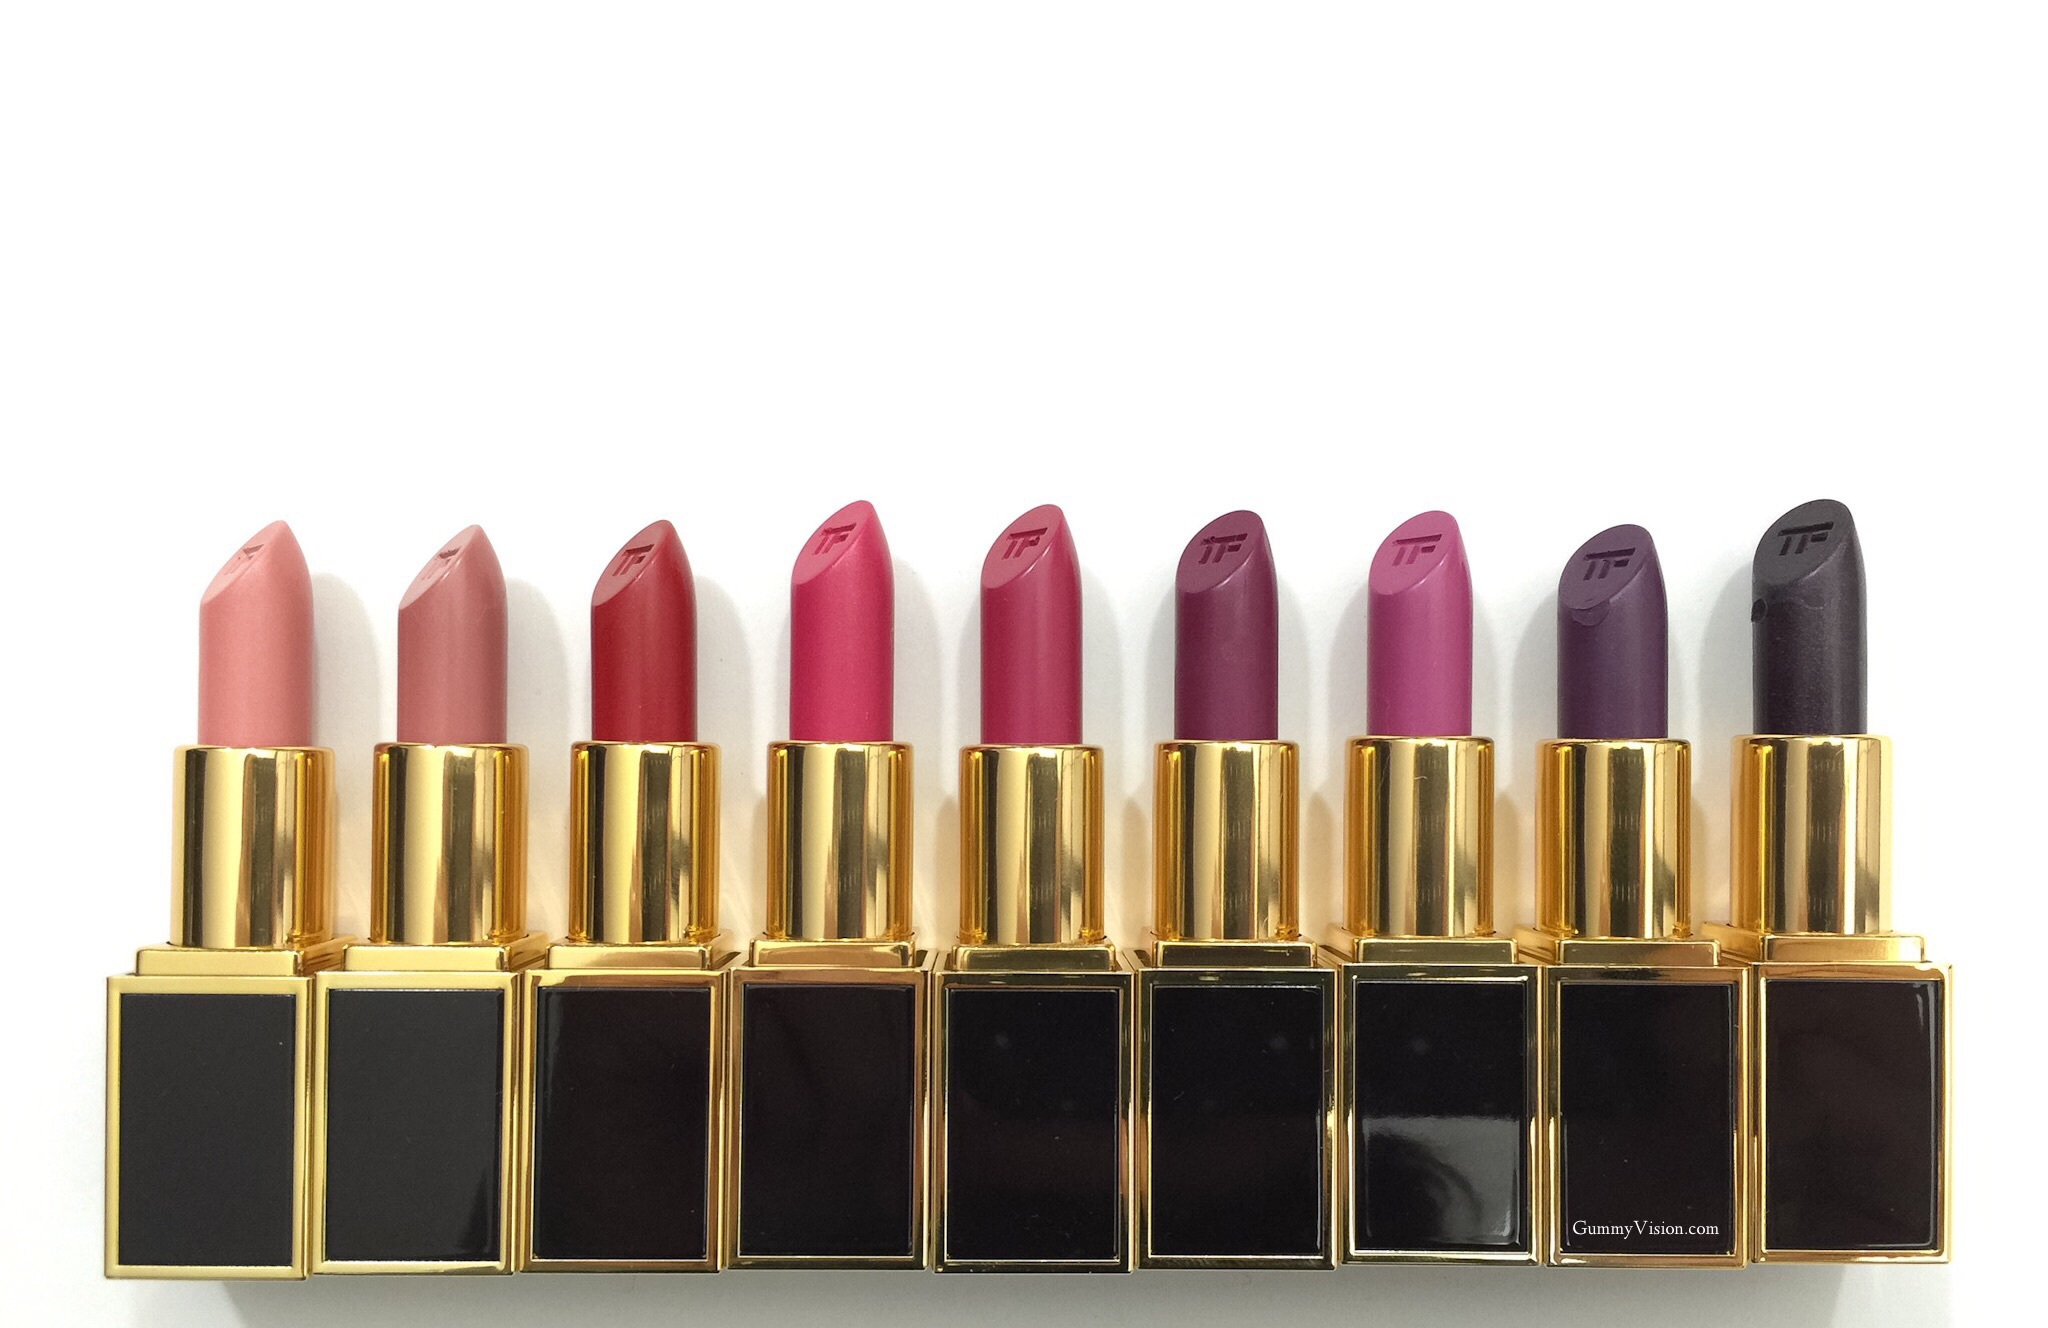 Tom Ford Lips & Boys (left to right) in Flynn, Addison, Luciano, Cooper, Francesco, Xavier, Jack, Liam, Alasdhair - www.gummyvision.com